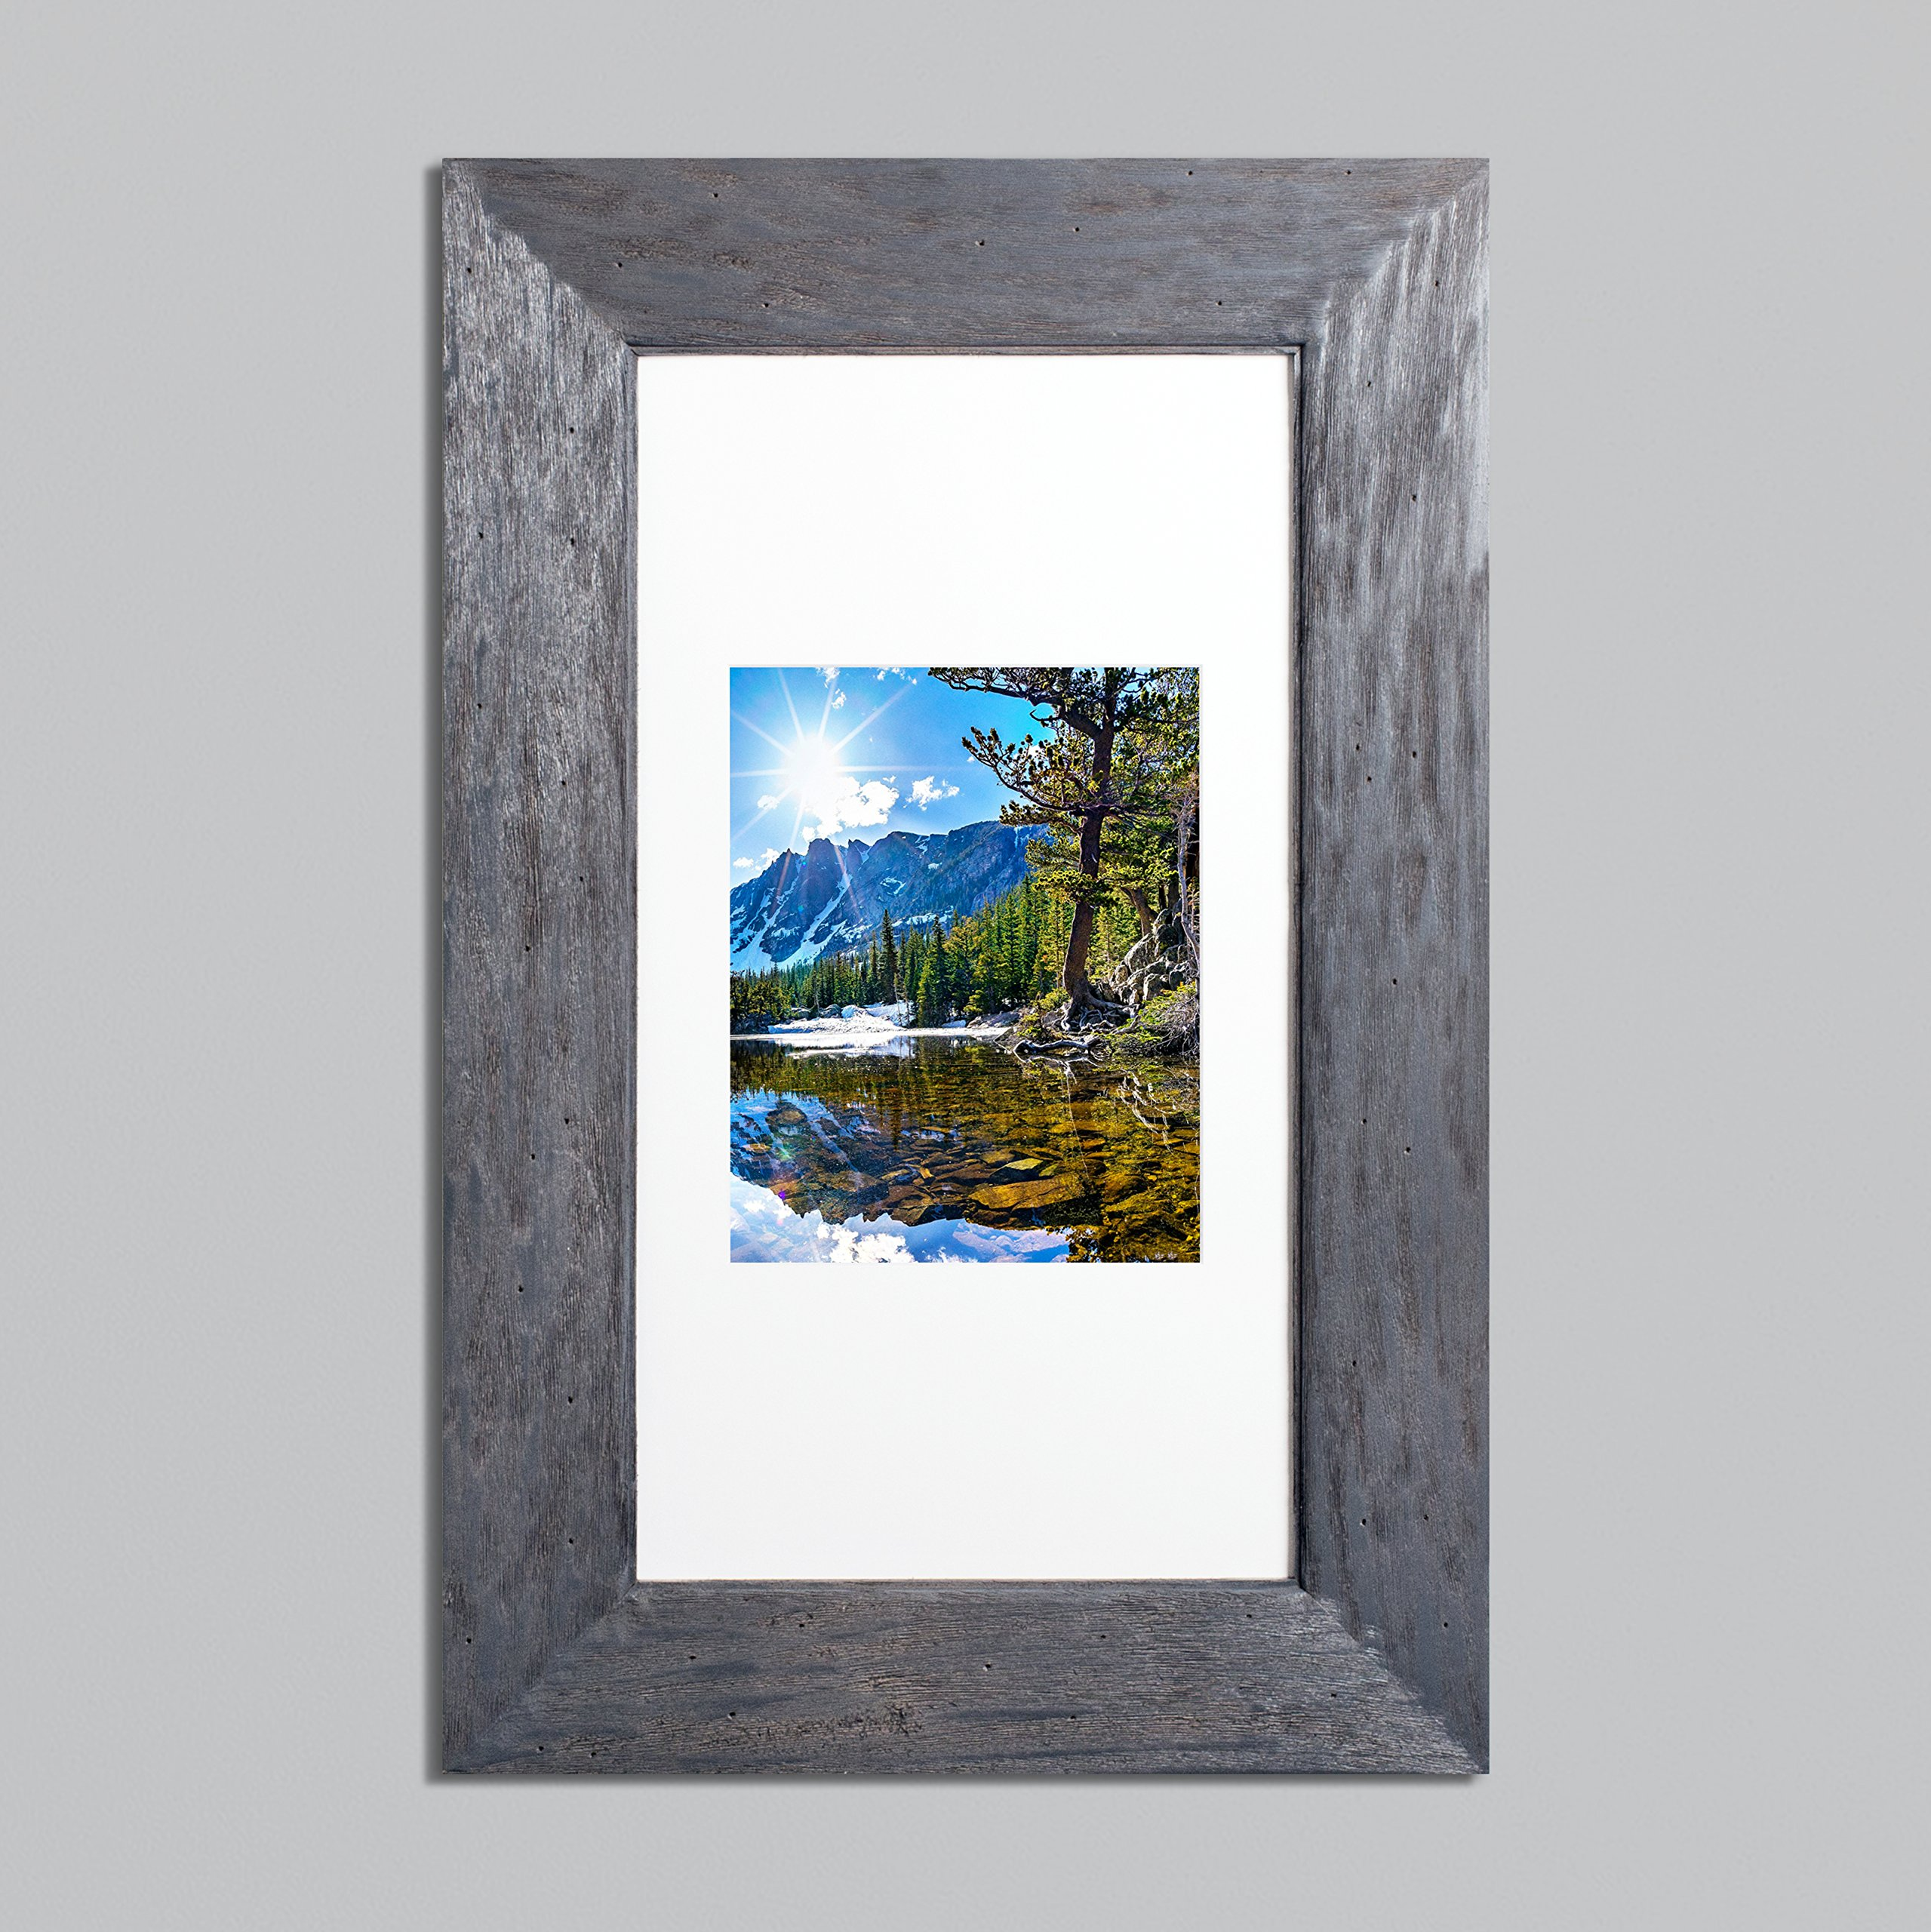 14x24 Rustic Gray Concealed Medicine Cabinet (Extra Large), a Recessed Mirrorless Medicine Cabinet with a Picture Frame Door by The Concealed Cabinet by iinnovators (Image #3)